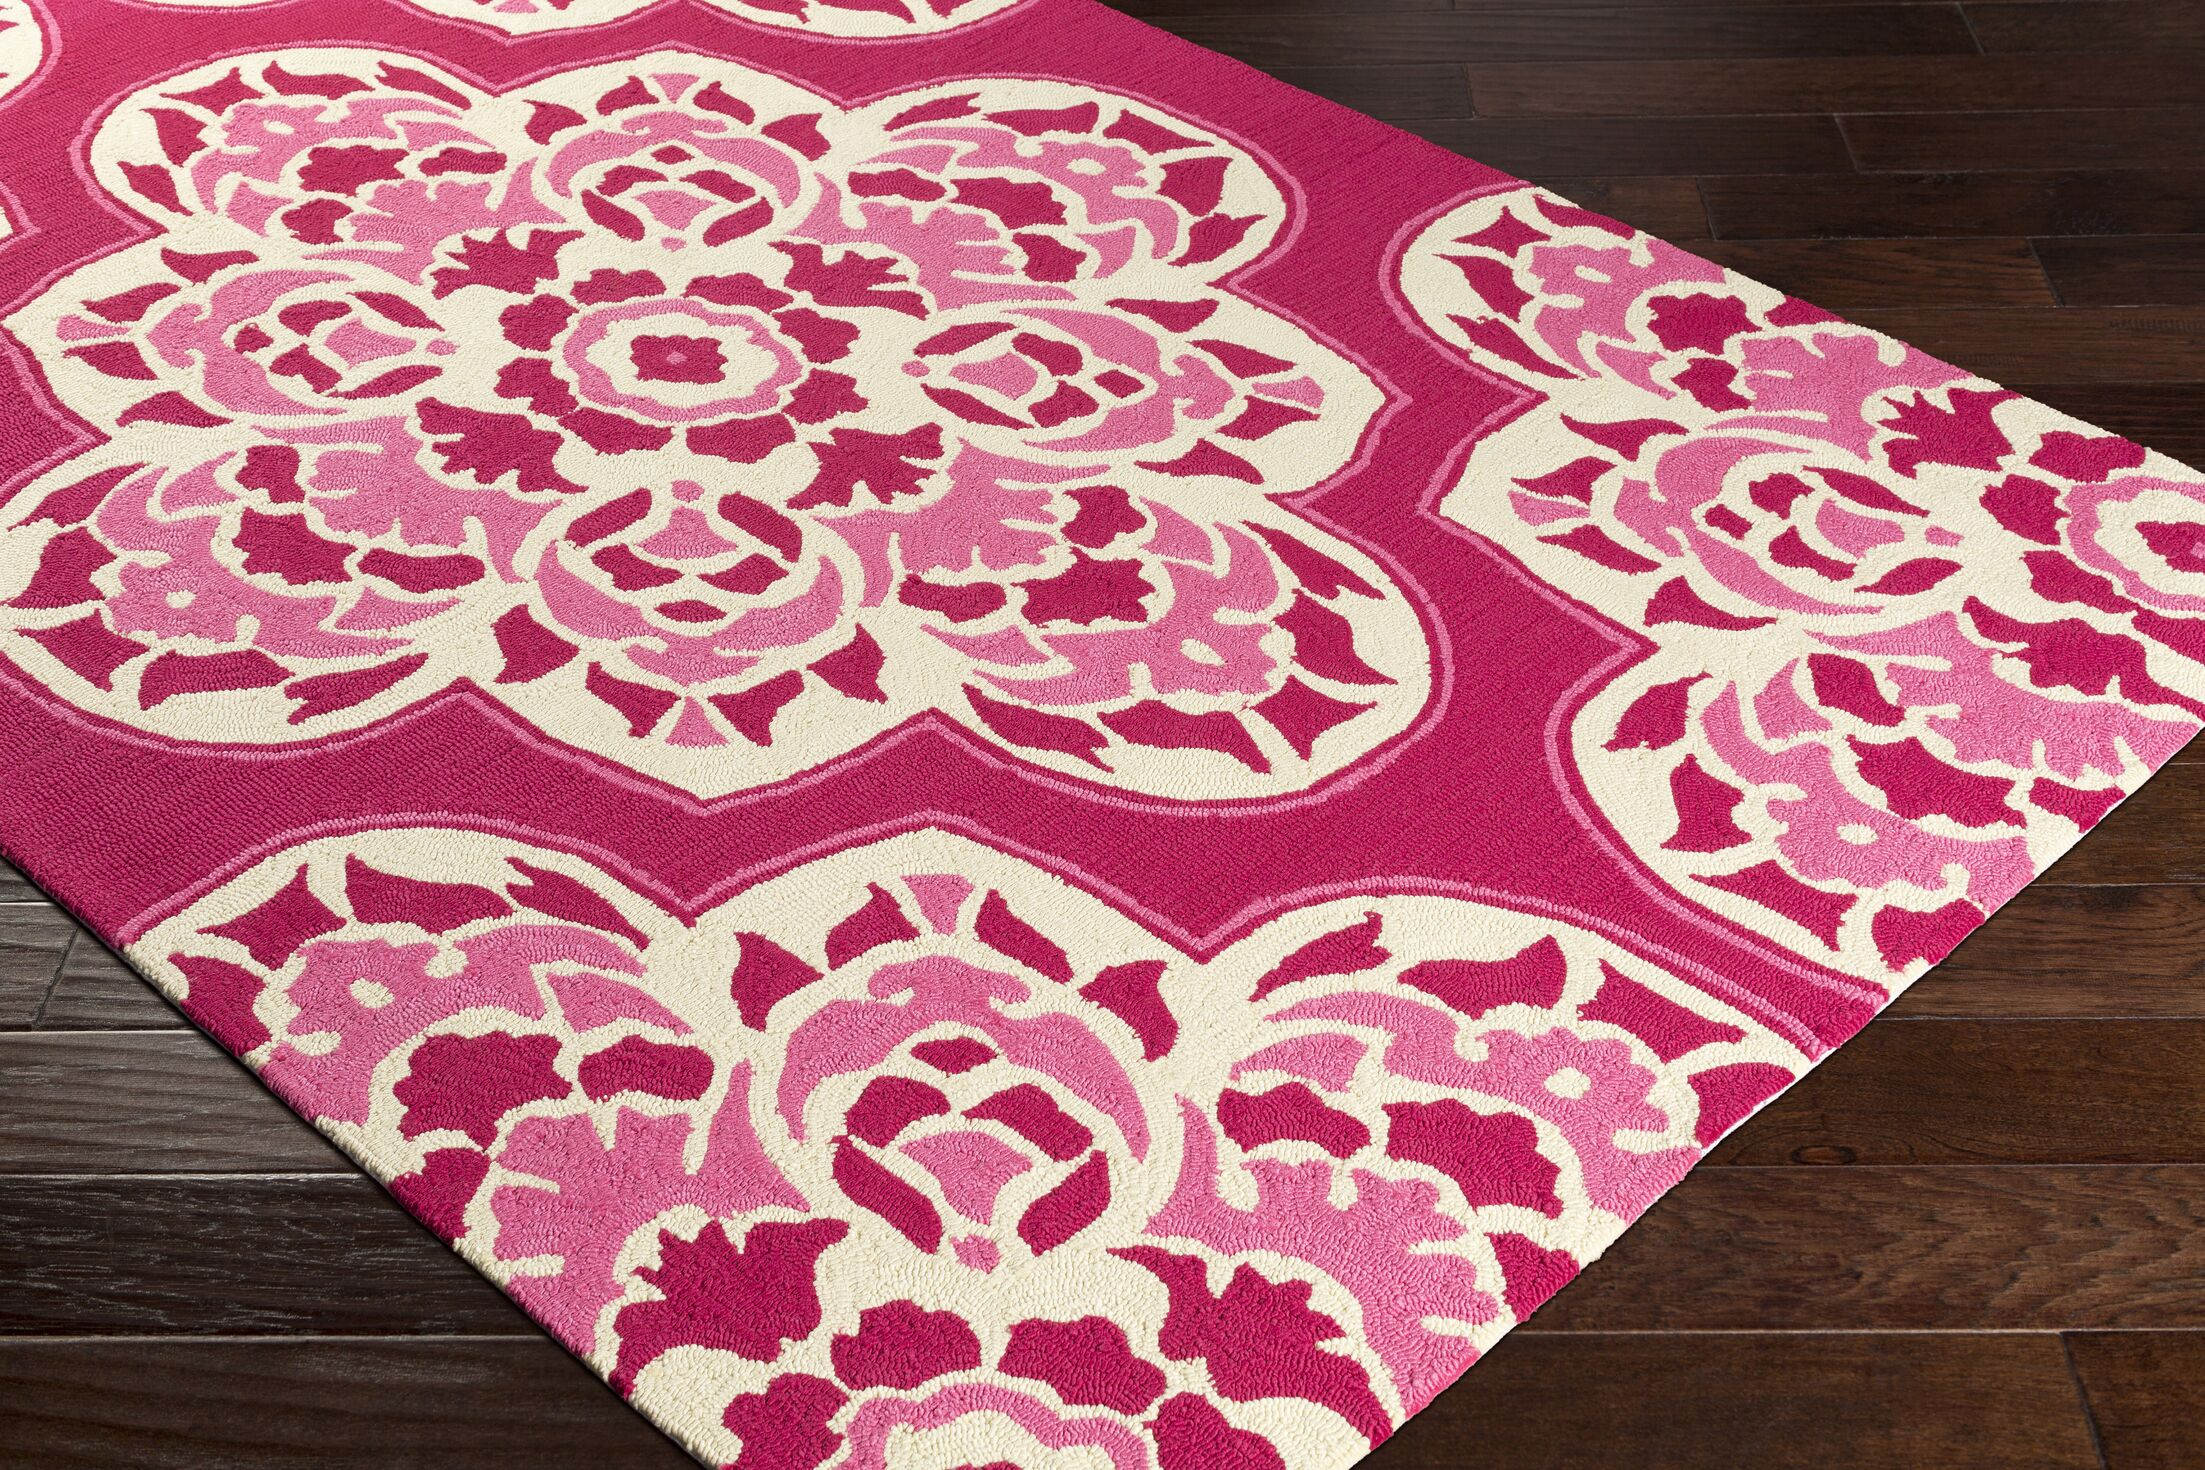 Pelchat Hand-Hooked Hot Pink Indoor/Outdoor Area Rug Rug Size: Rectangle 9' x 12'